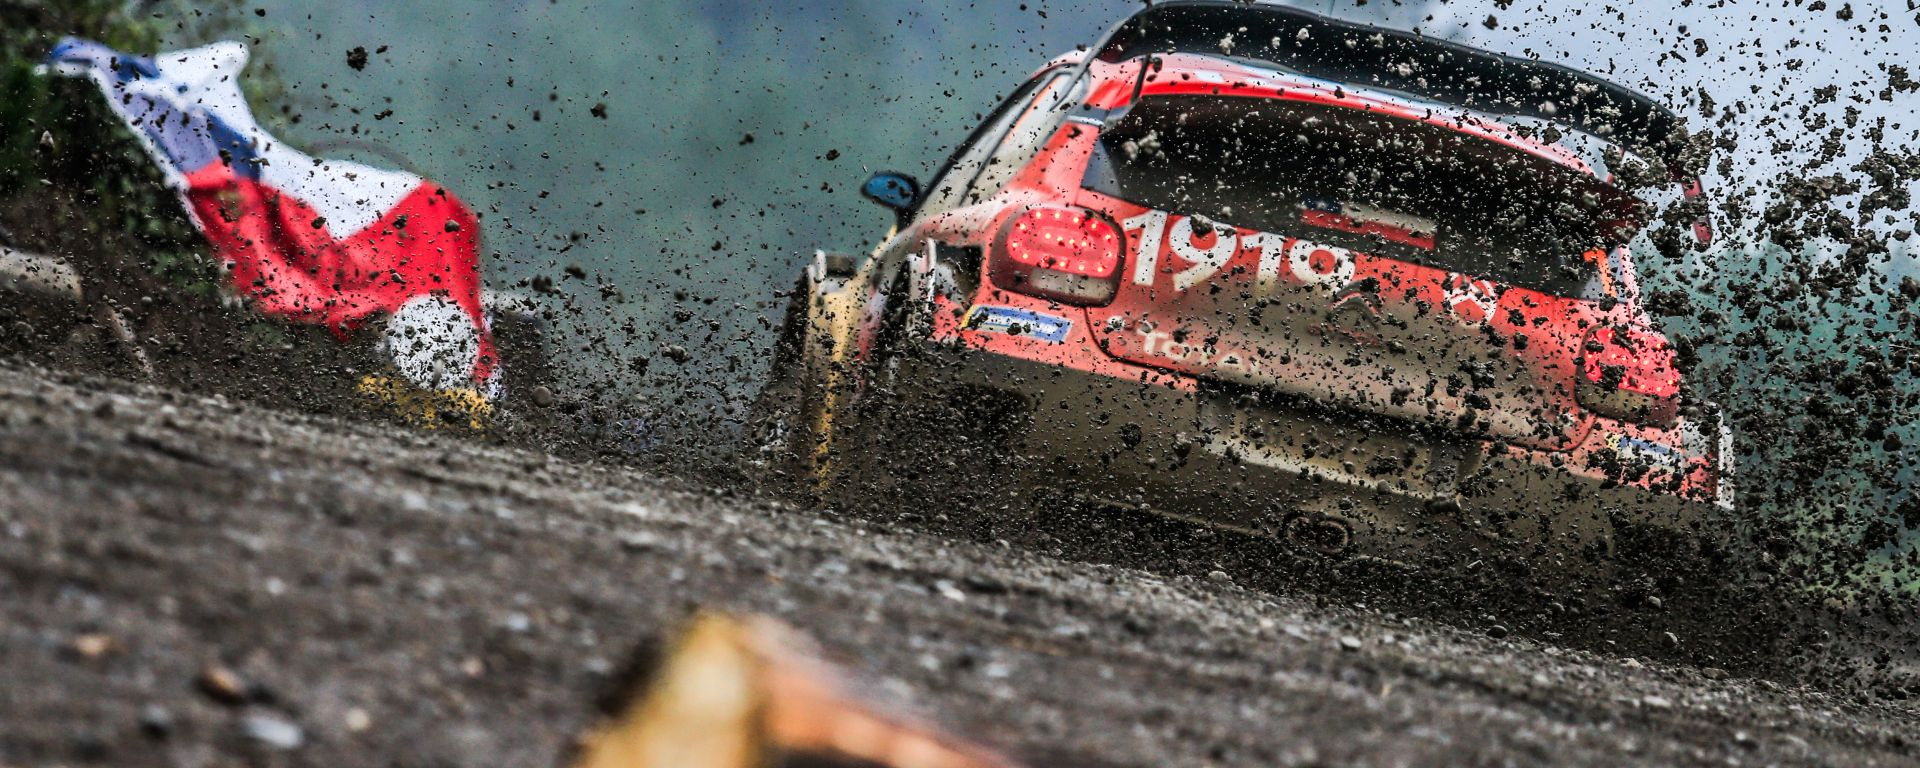 Wrc - Rally del Galles preview